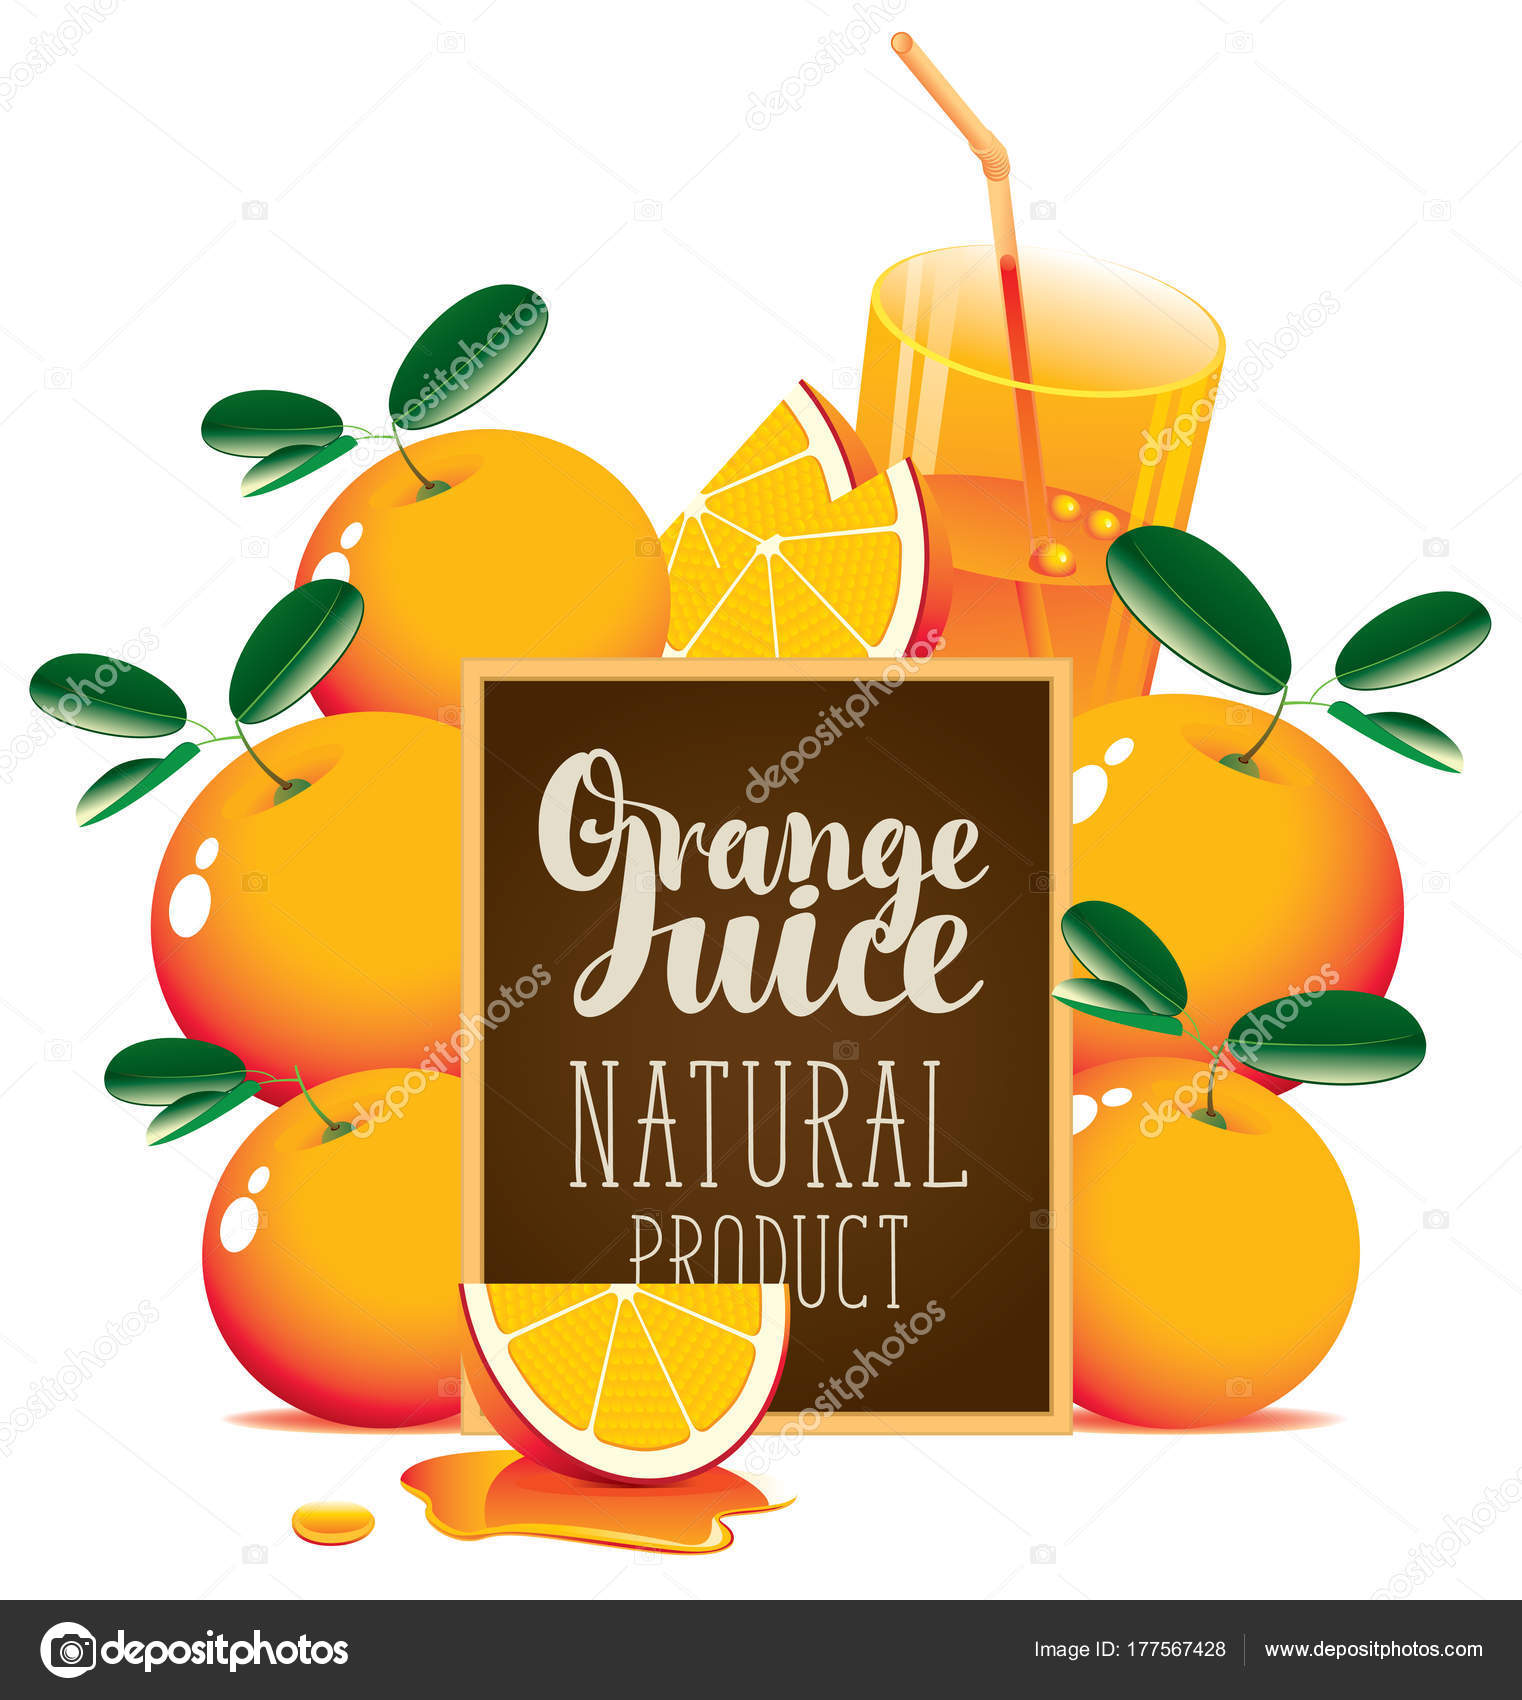 Orange Juice Banner With Oranges And Blackboard Stock Vector C Paseven 177567428